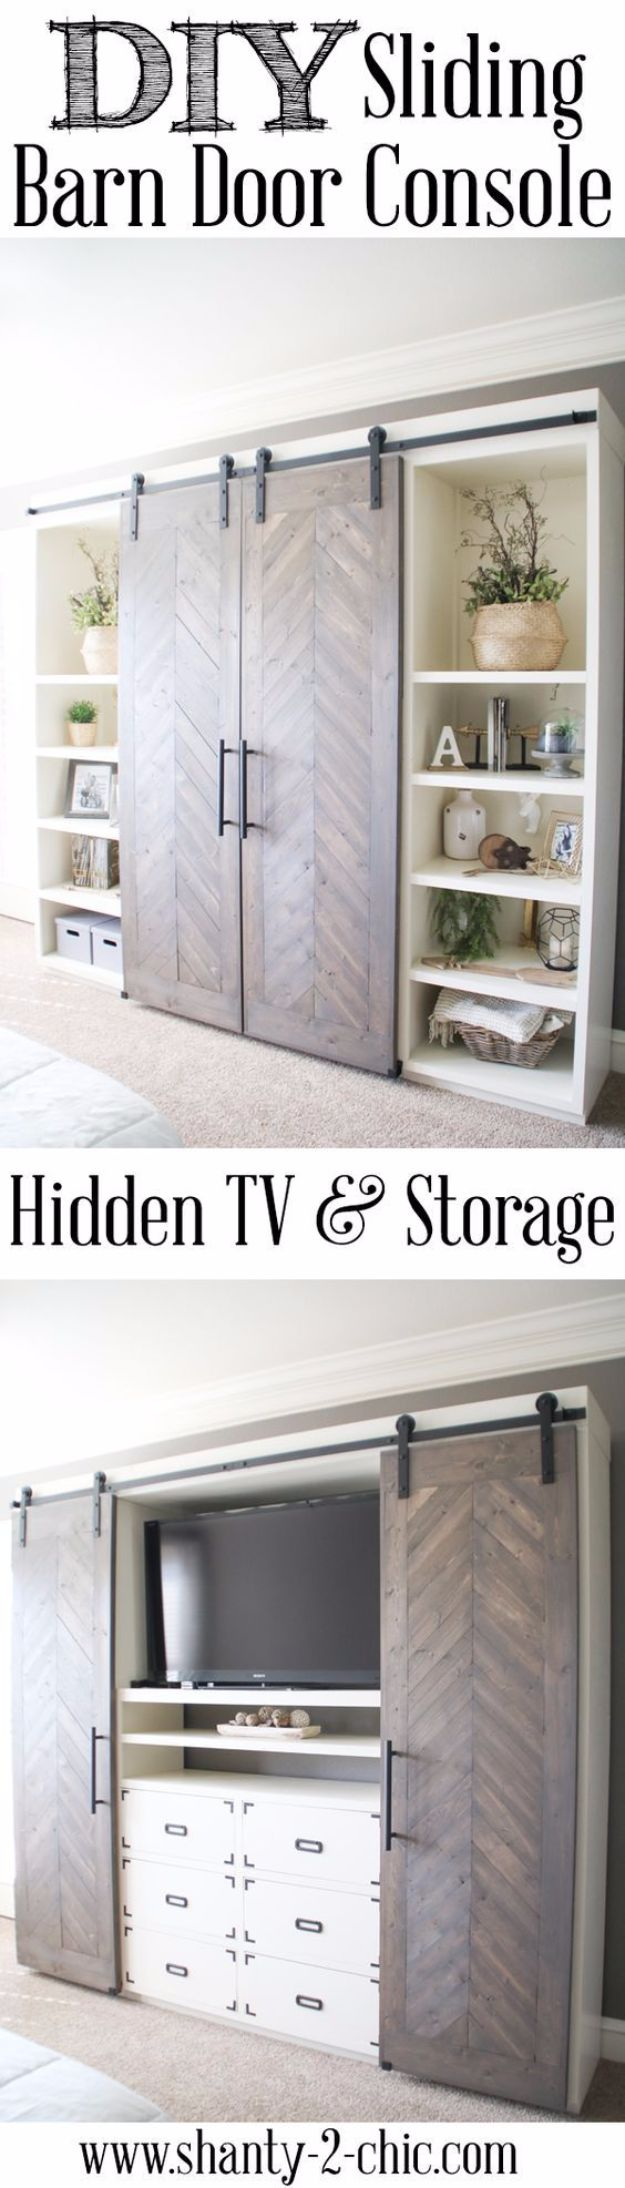 DIY Media Consoles and TV Stands - Sliding Barn Door Media Console - Make a Do It Yourself Entertainment Center With These Easy Step By Step Tutorials - Easy Farmhouse Decor Media Stand for Television - Free Plans and Instructions for Building and Painting Your Own DIY Furniture - IKEA Hacks for TV Stand Idea - Quick and Easy Ways to Decorate Your Home On A Budget http://diyjoy.com/diy-tv-media-consoles